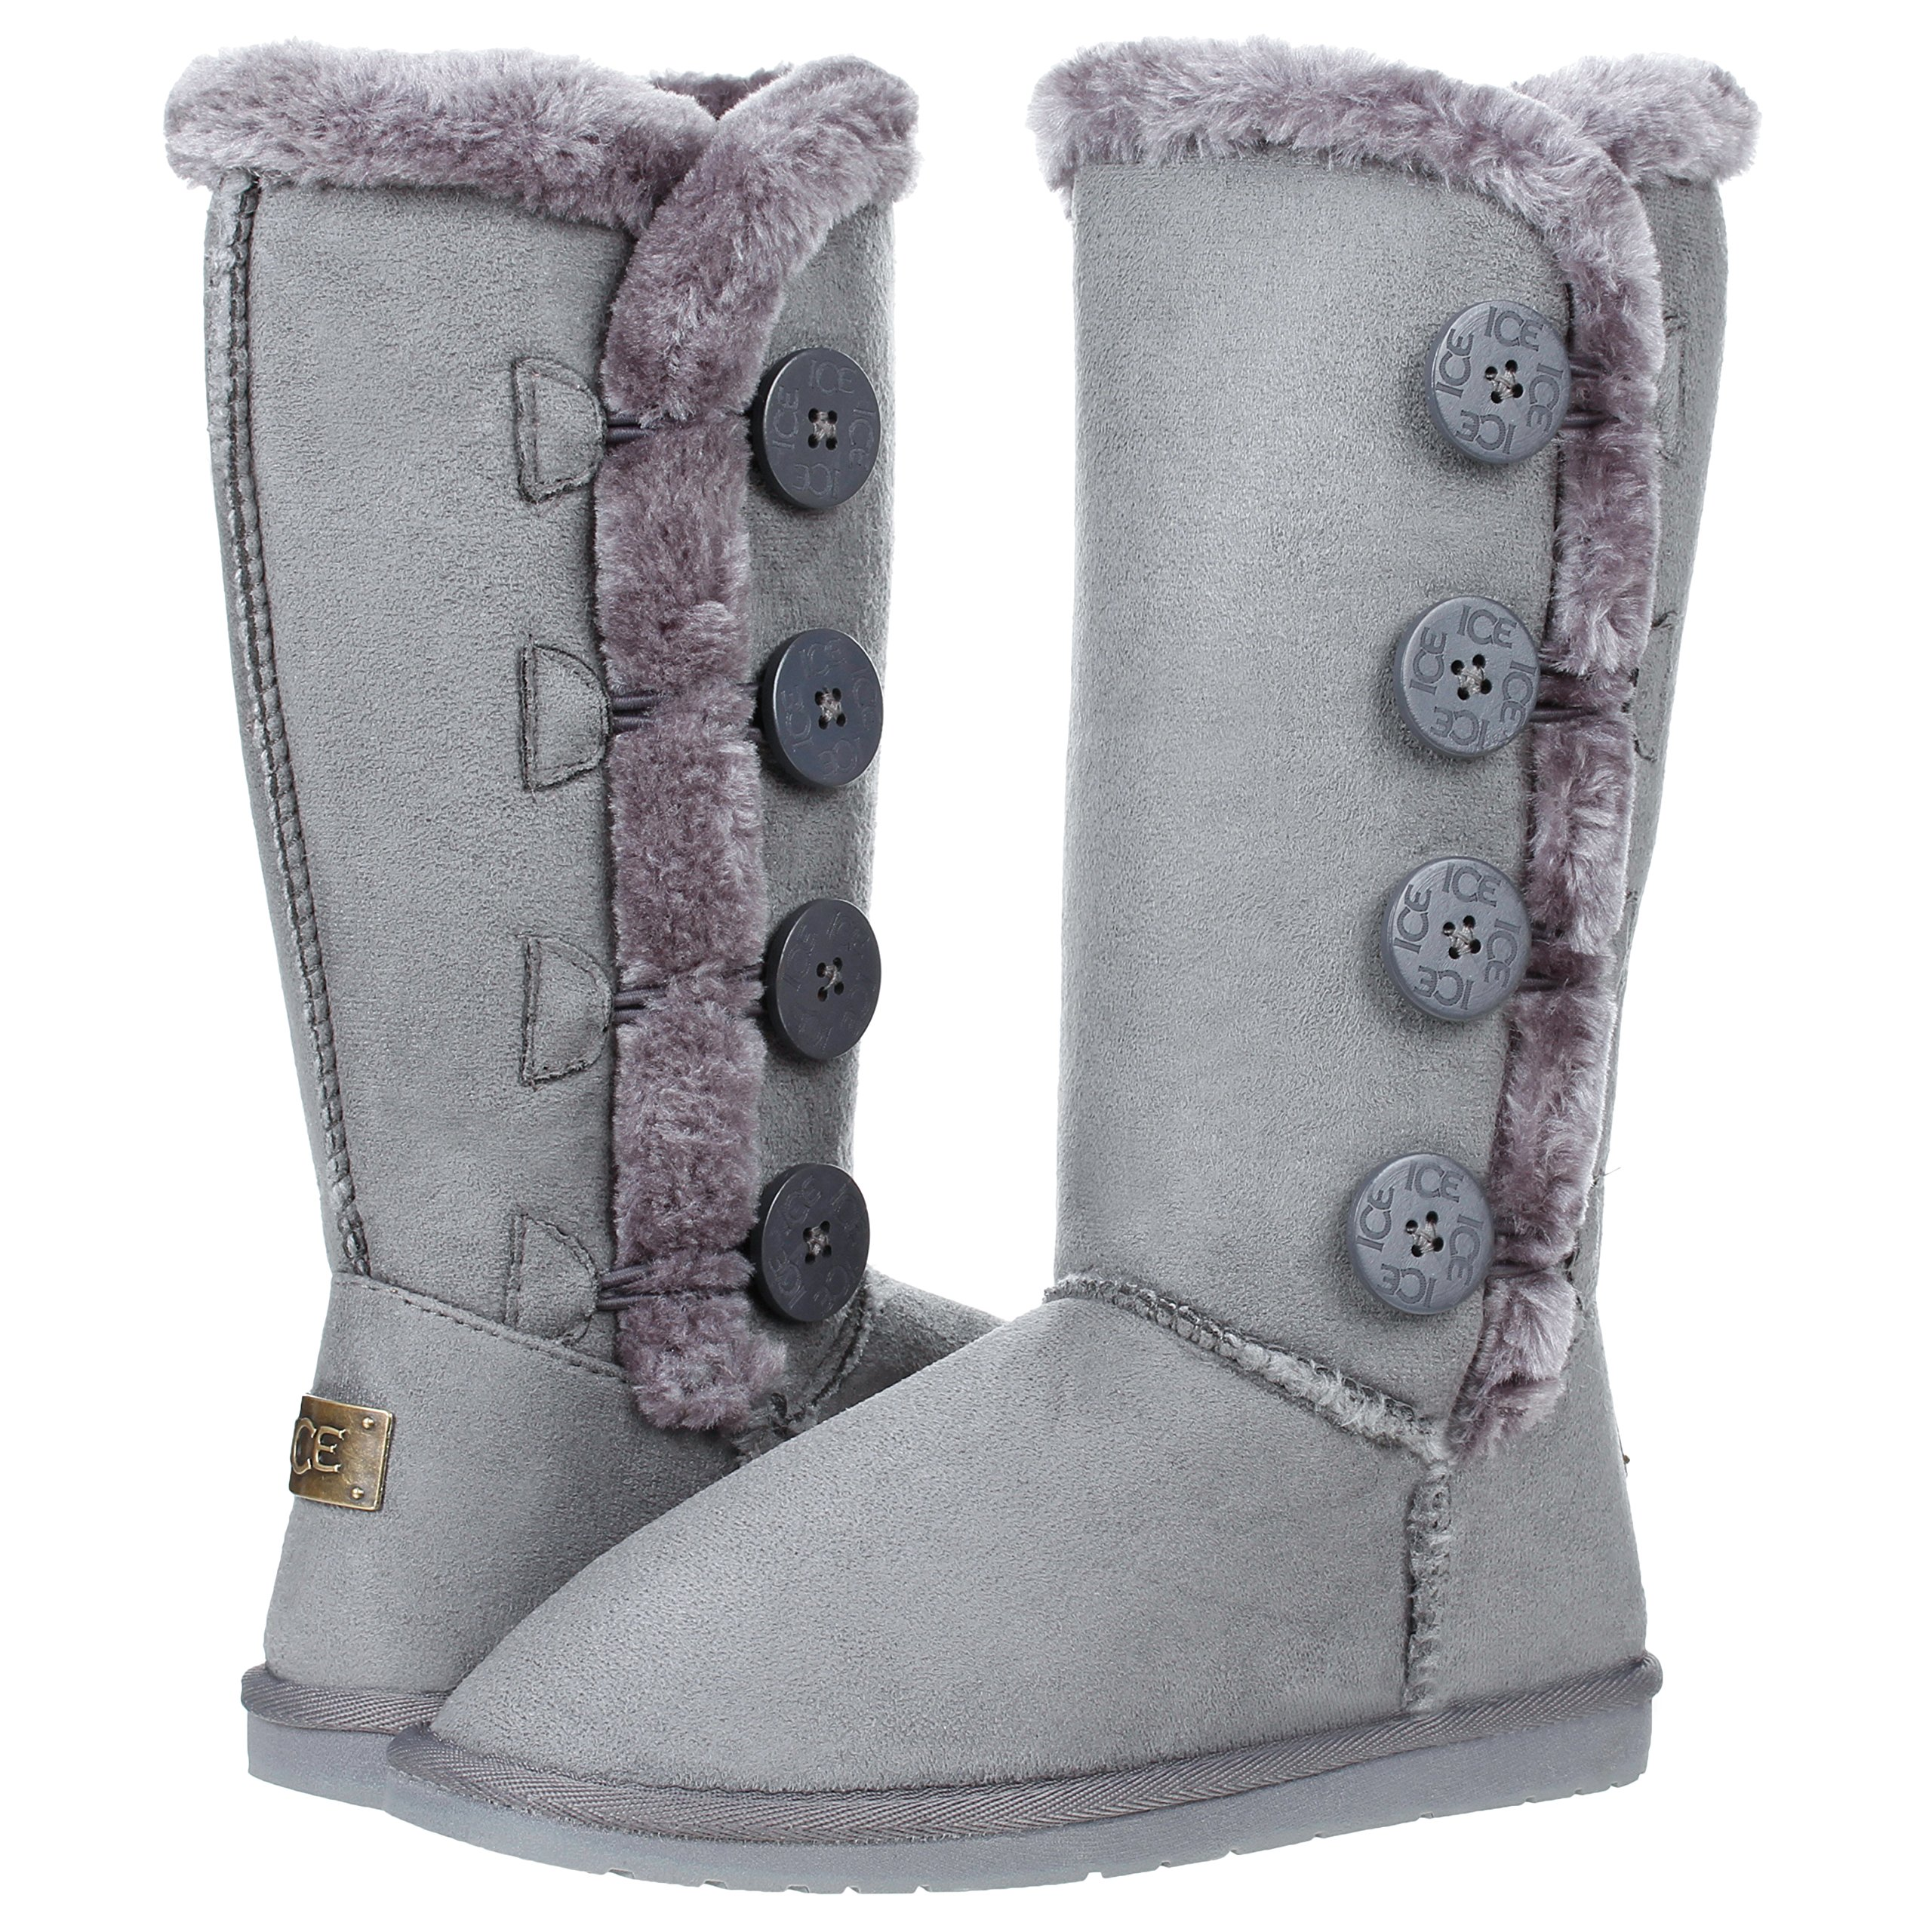 New Women's Four Button Faux Fur Lined Shearling Mid Calf Winter Boots (8, Gray)